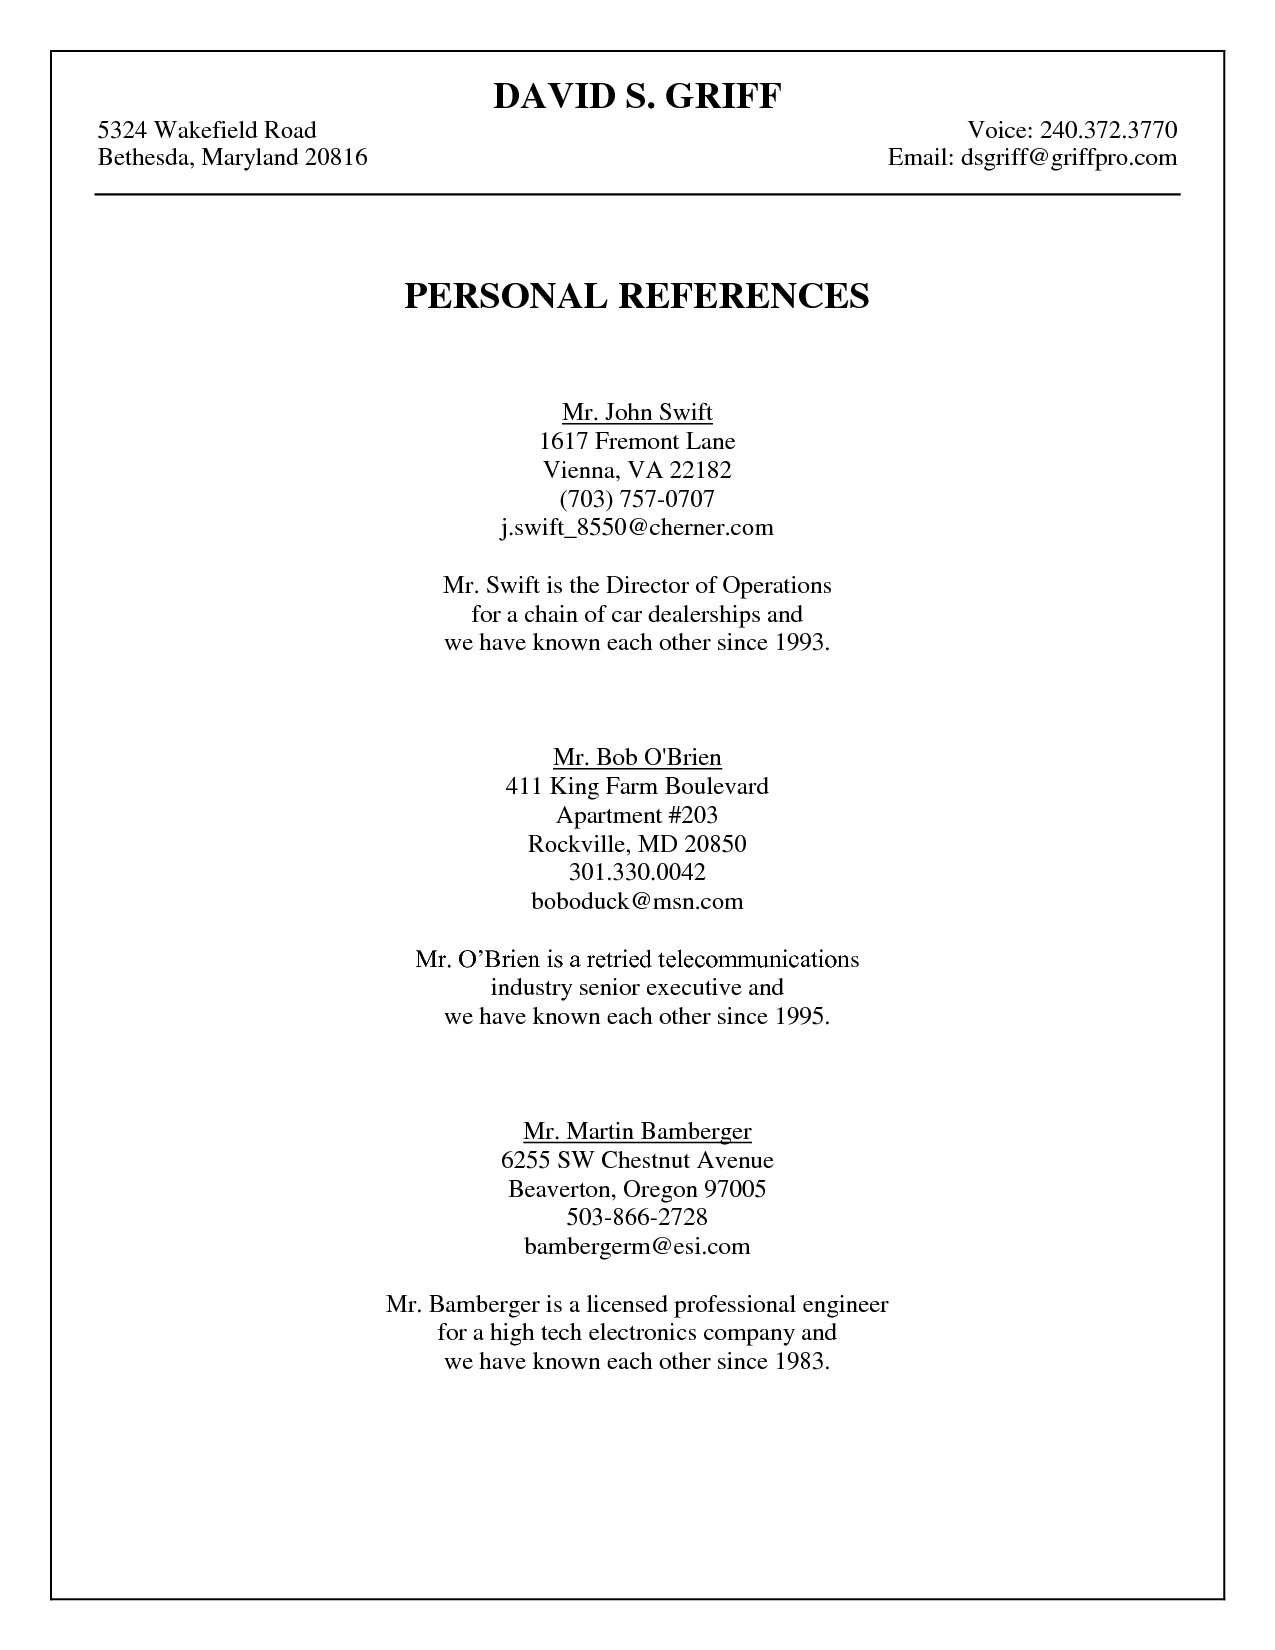 personal reference templates